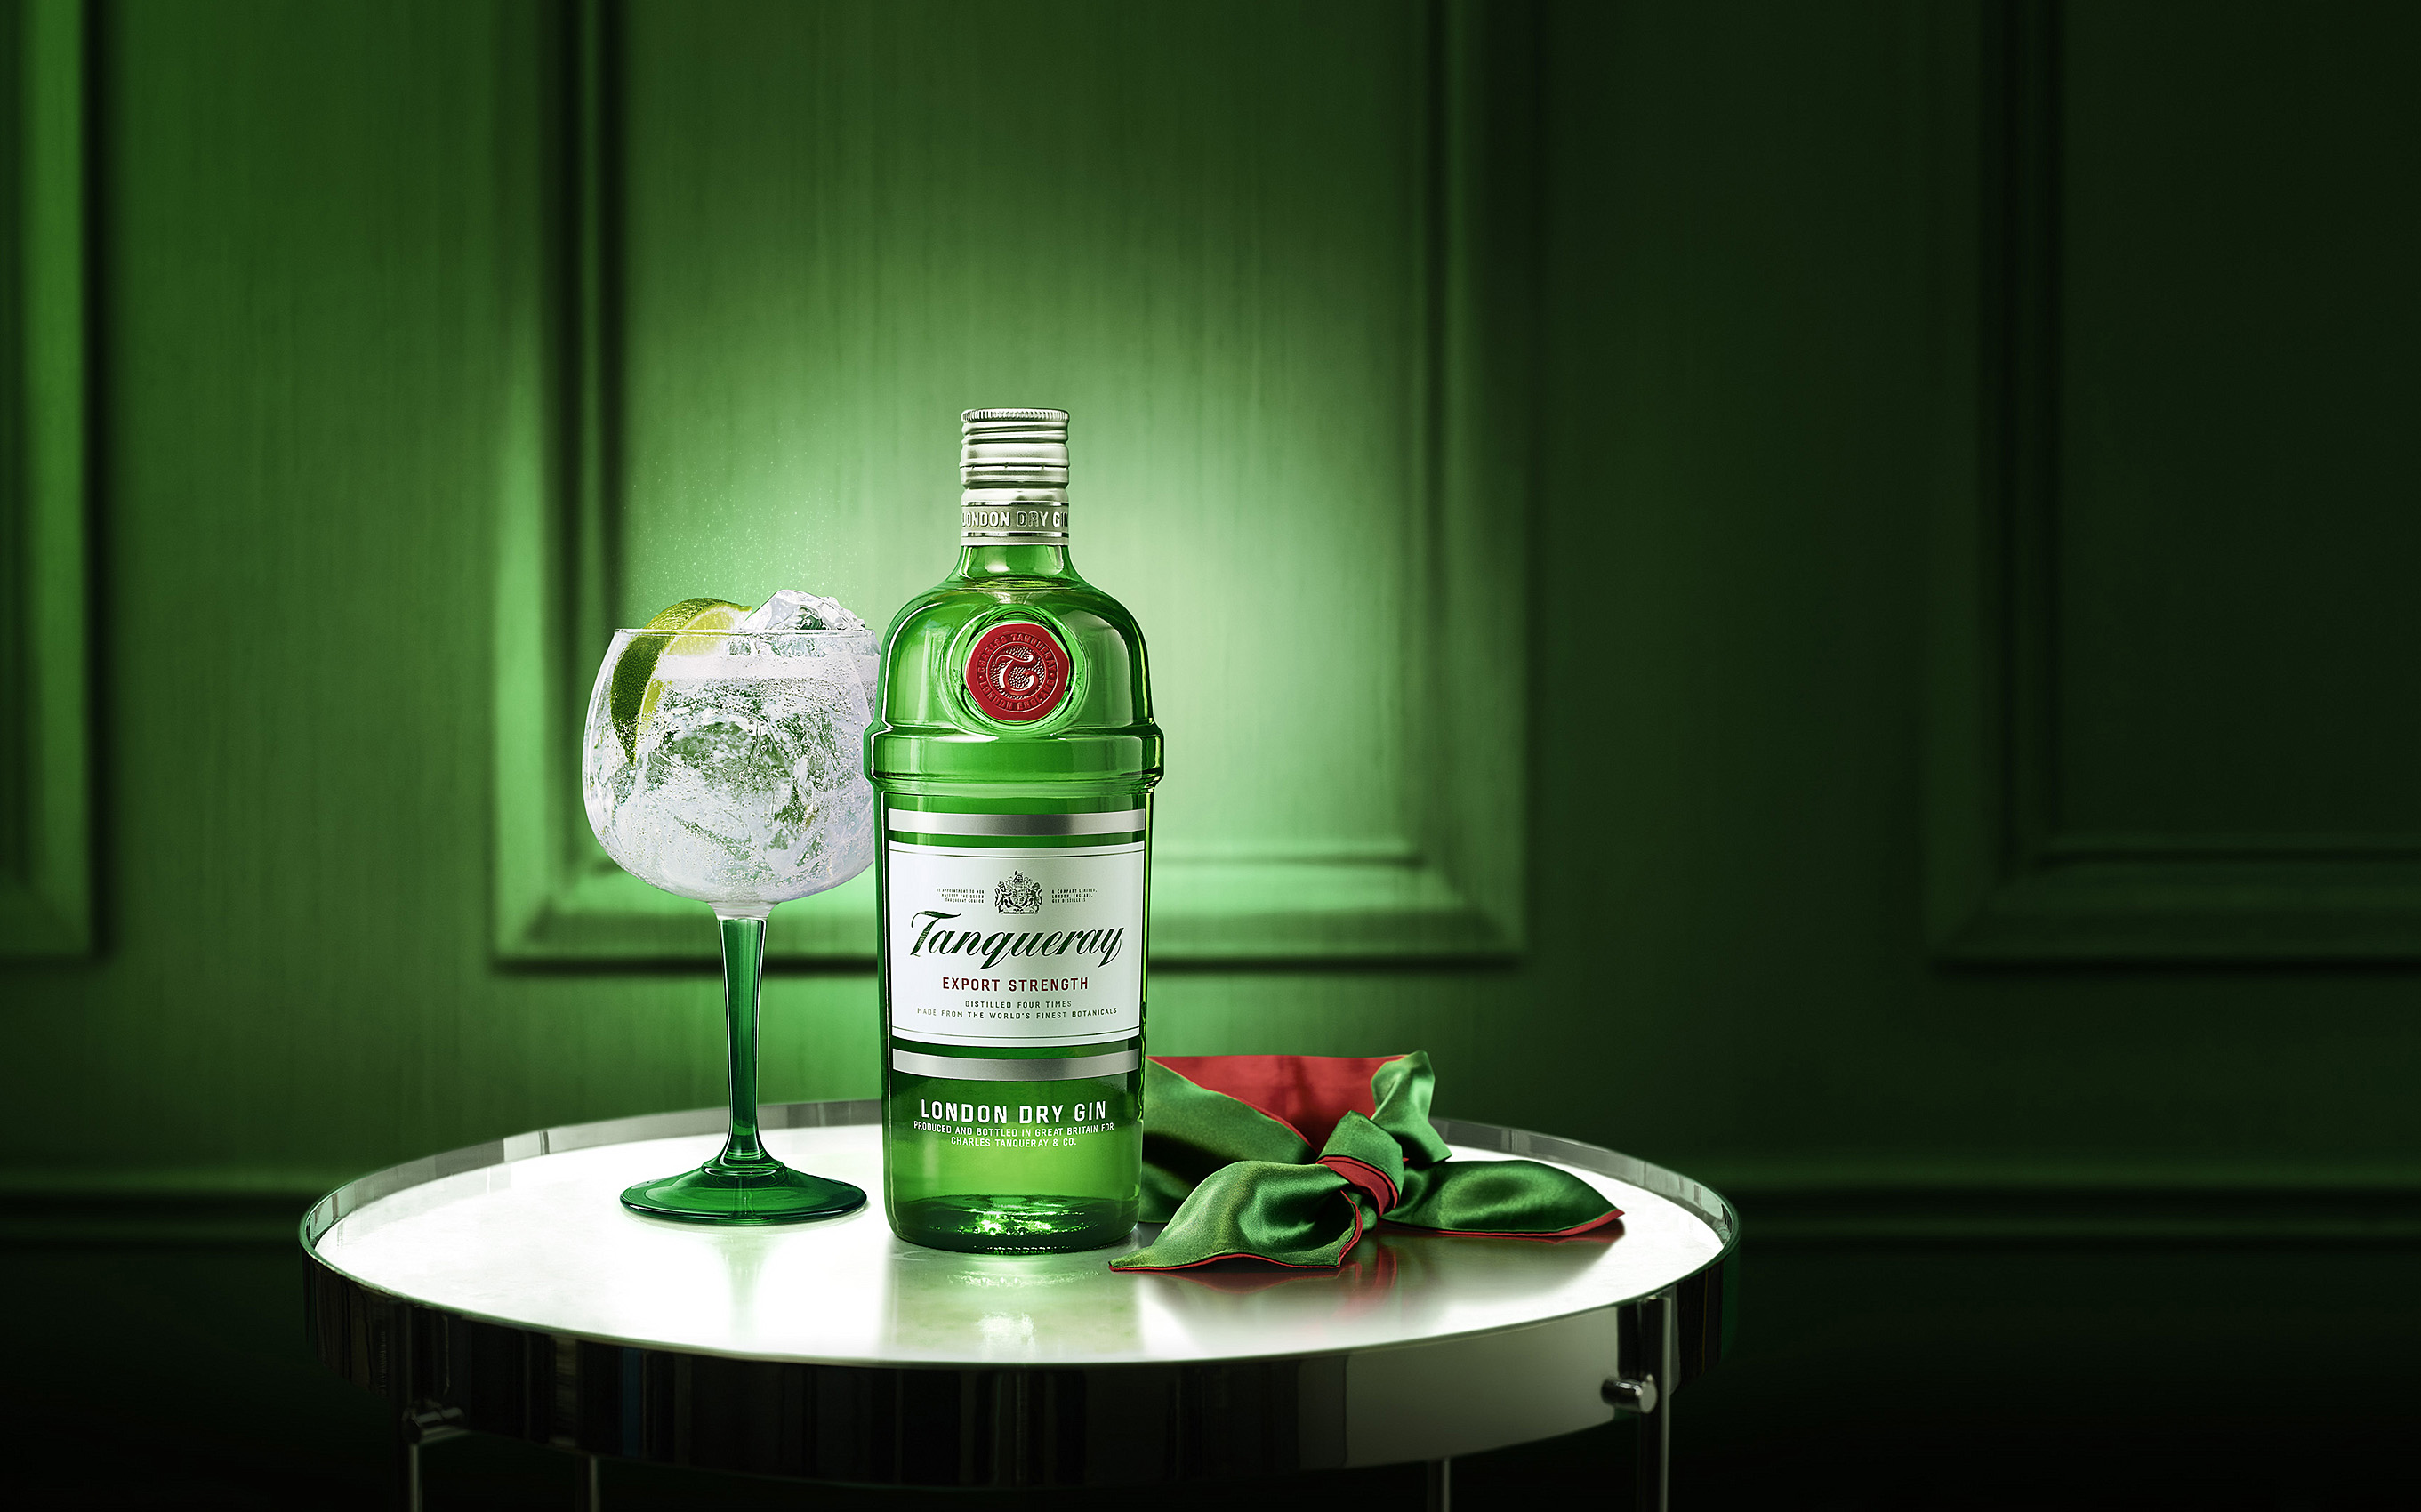 Tanqueray_London_Dry_w6b_EXPORT_STRENGTH